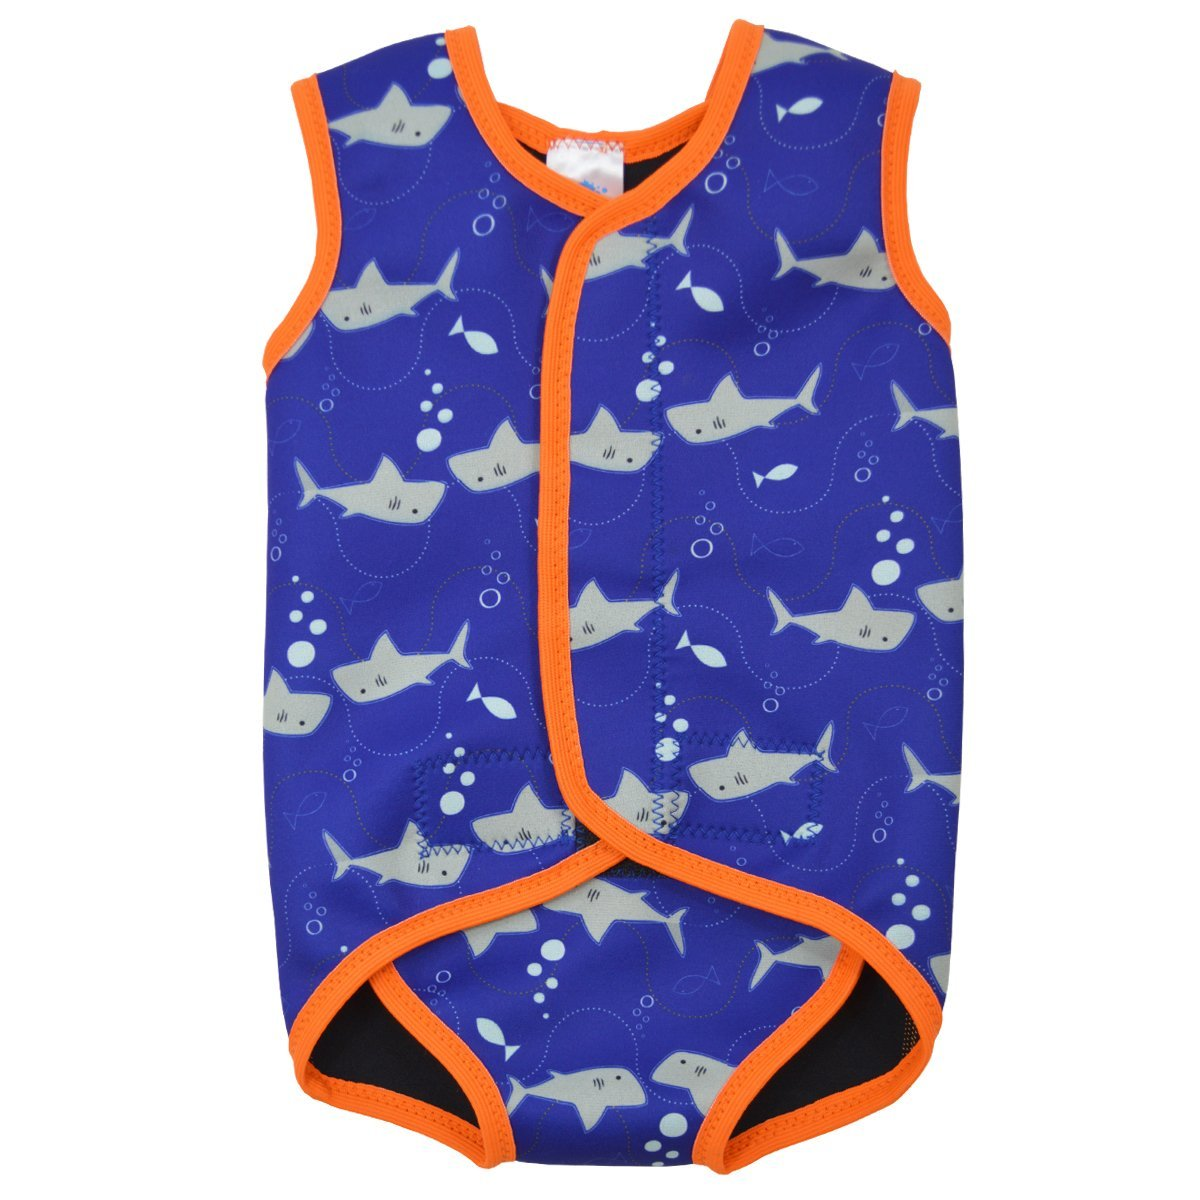 Splash About Baby Wrap Wetsuit - Shark Print, Large (18-30 Months) BWSOL